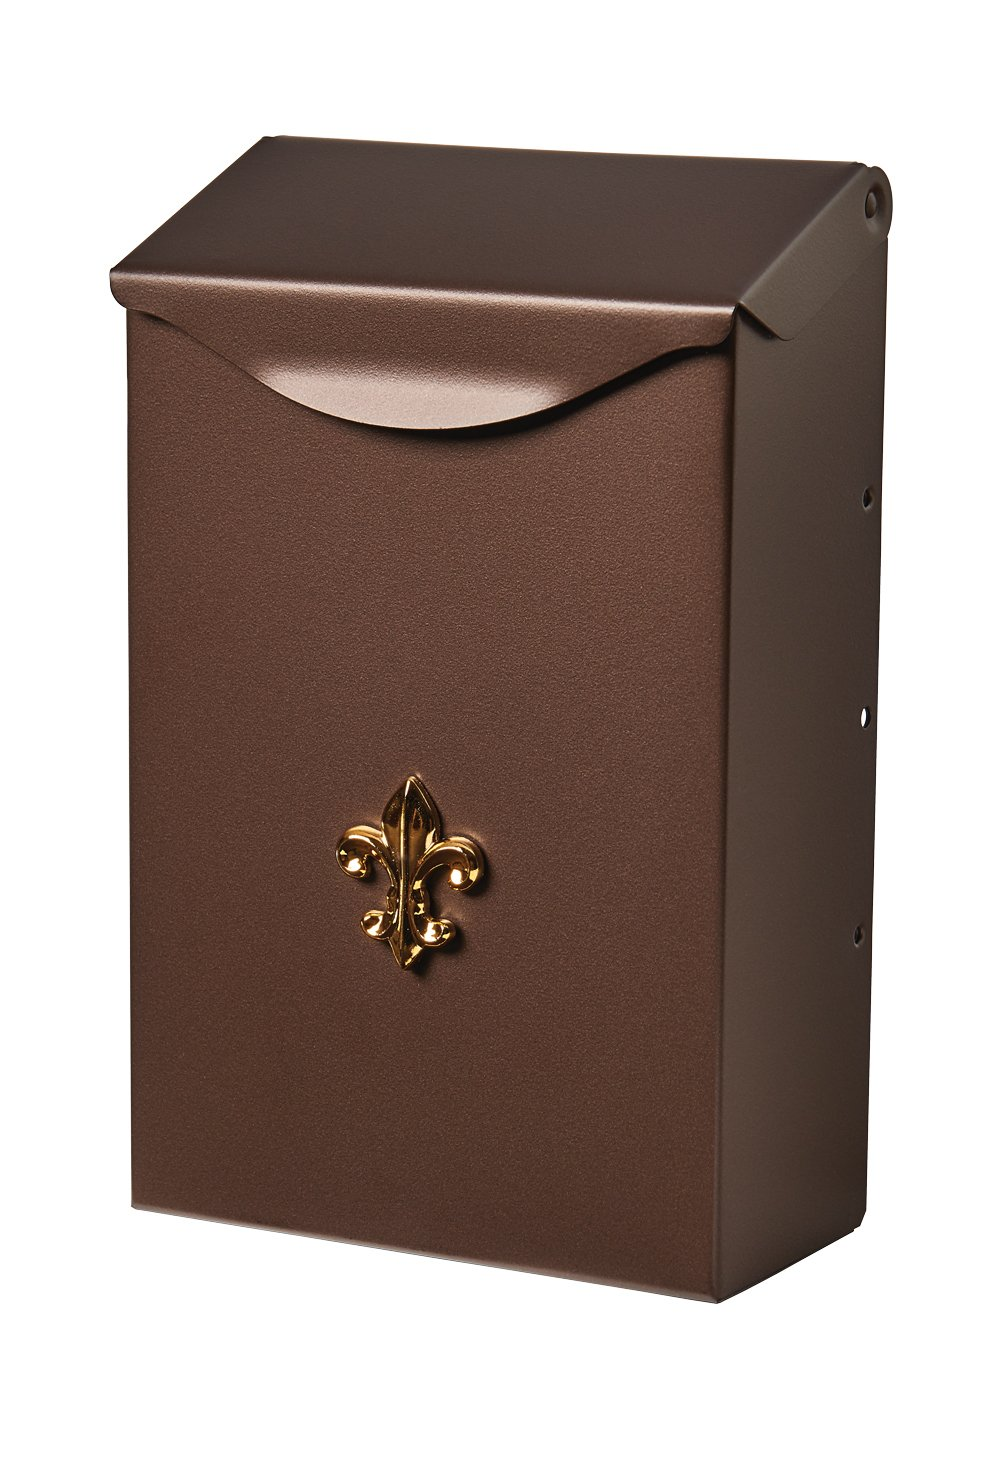 Gibraltar Mailboxes Classic Small Capacity Galvanized Steel Venetian Bronze, Wall-Mount Mailbox, BW110V04